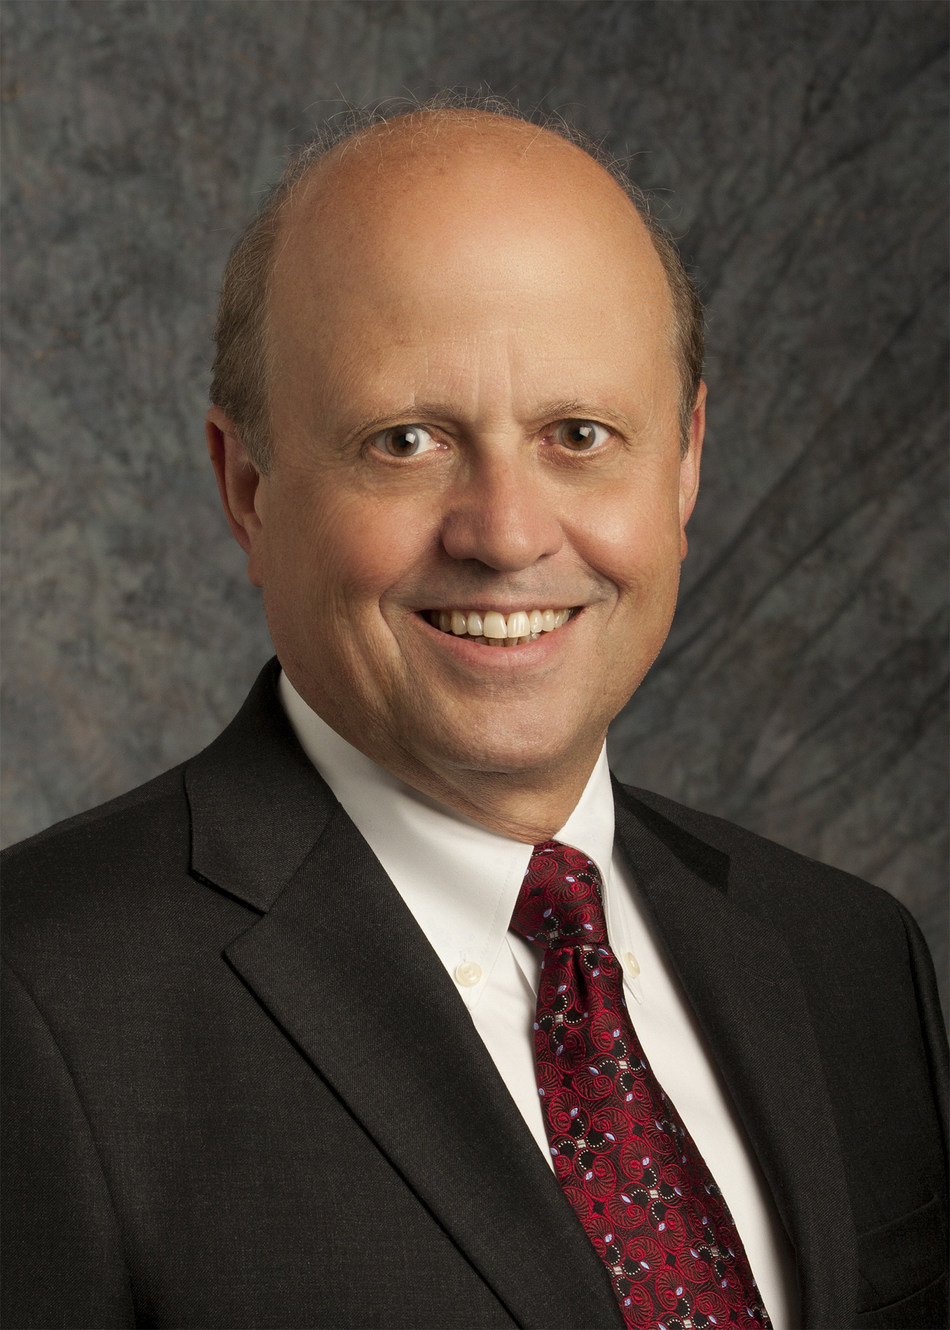 Walden C. Rhines, CEO and chairman, Mentor Graphics Corporation